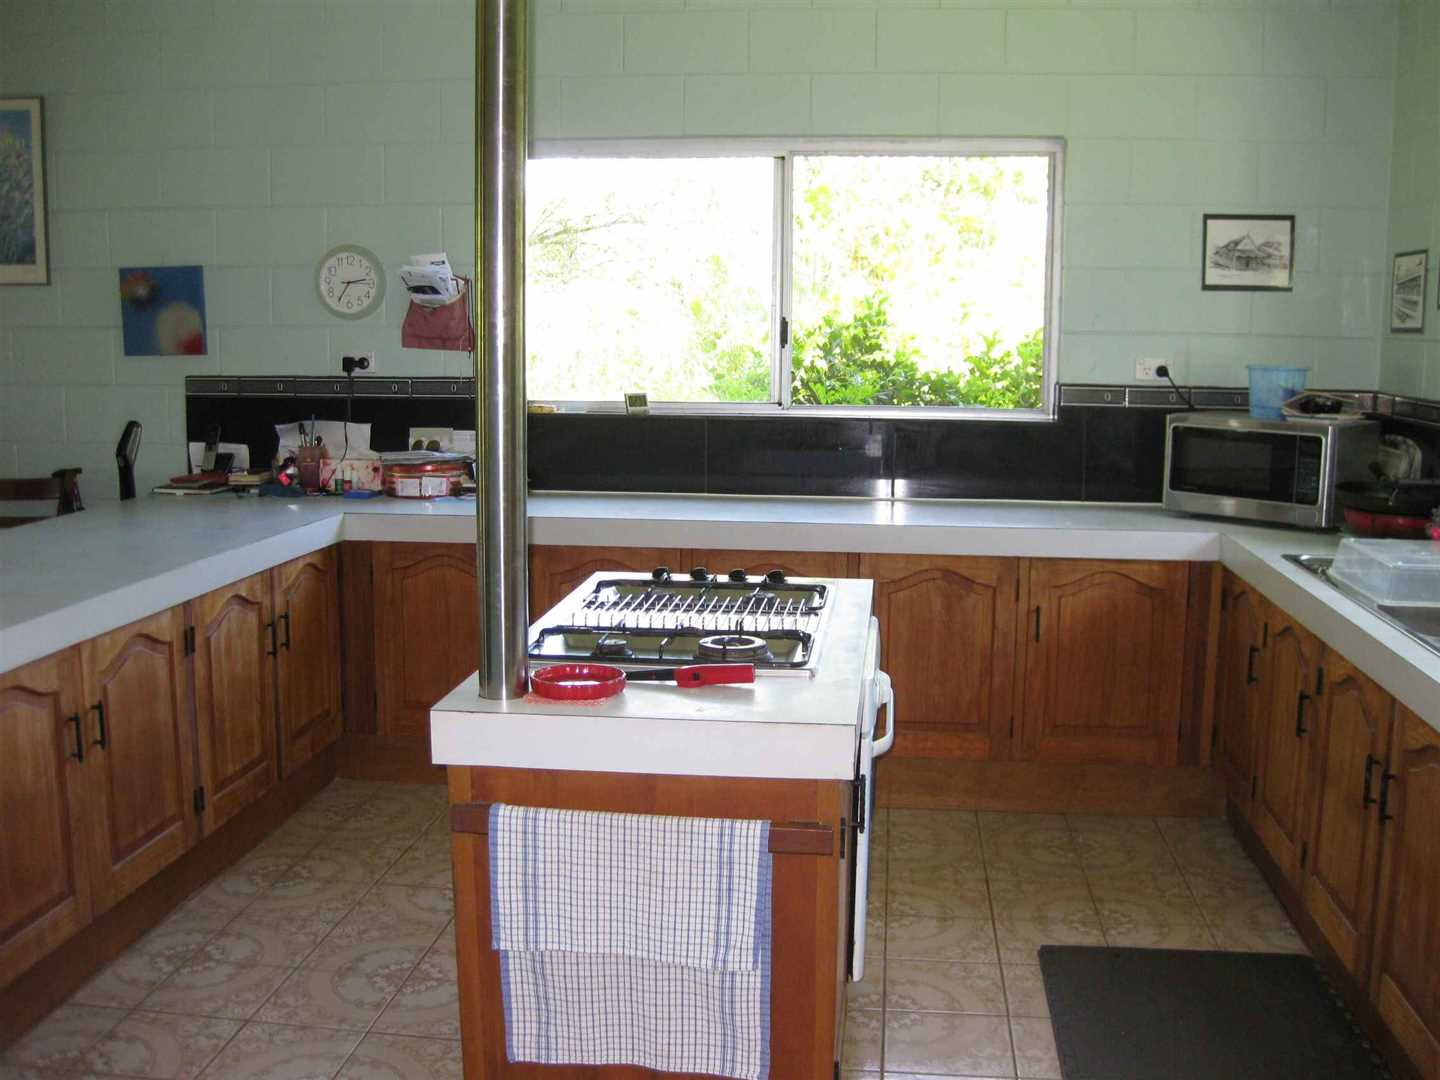 Inside view of part of home showing part of the kitchen